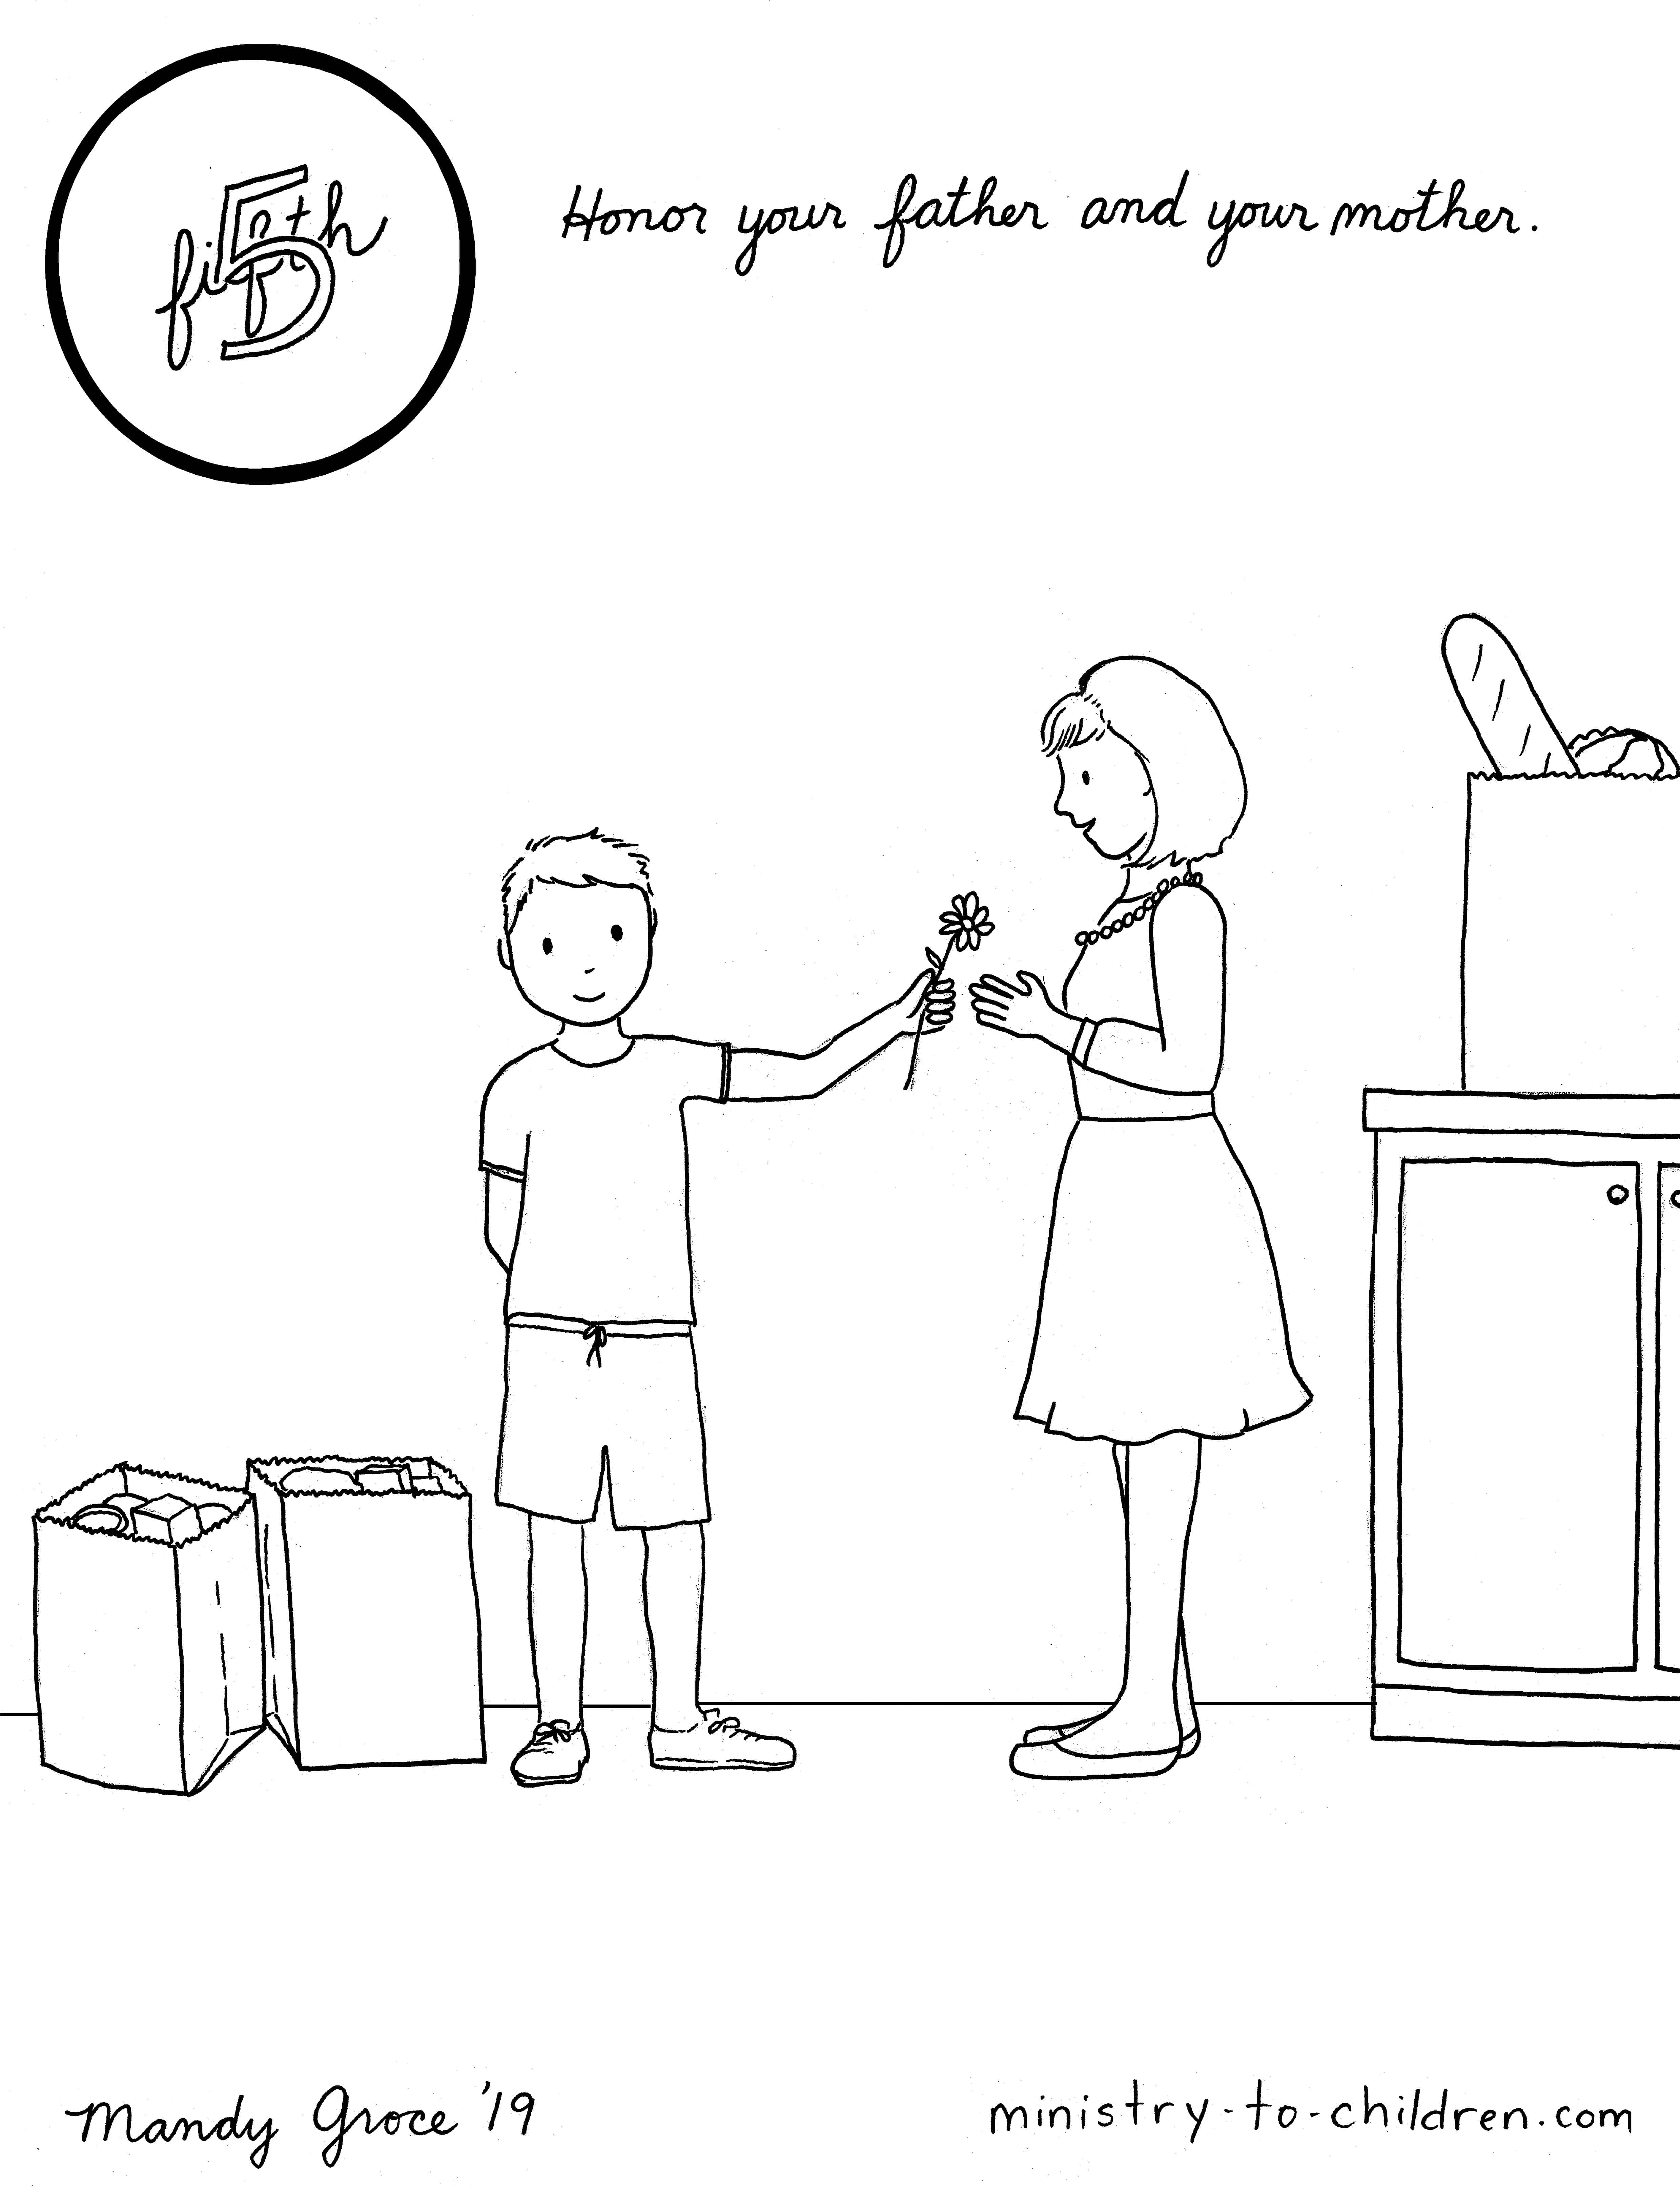 5 Mother's Day Coloring Pages Easy Print Ministry-To ...